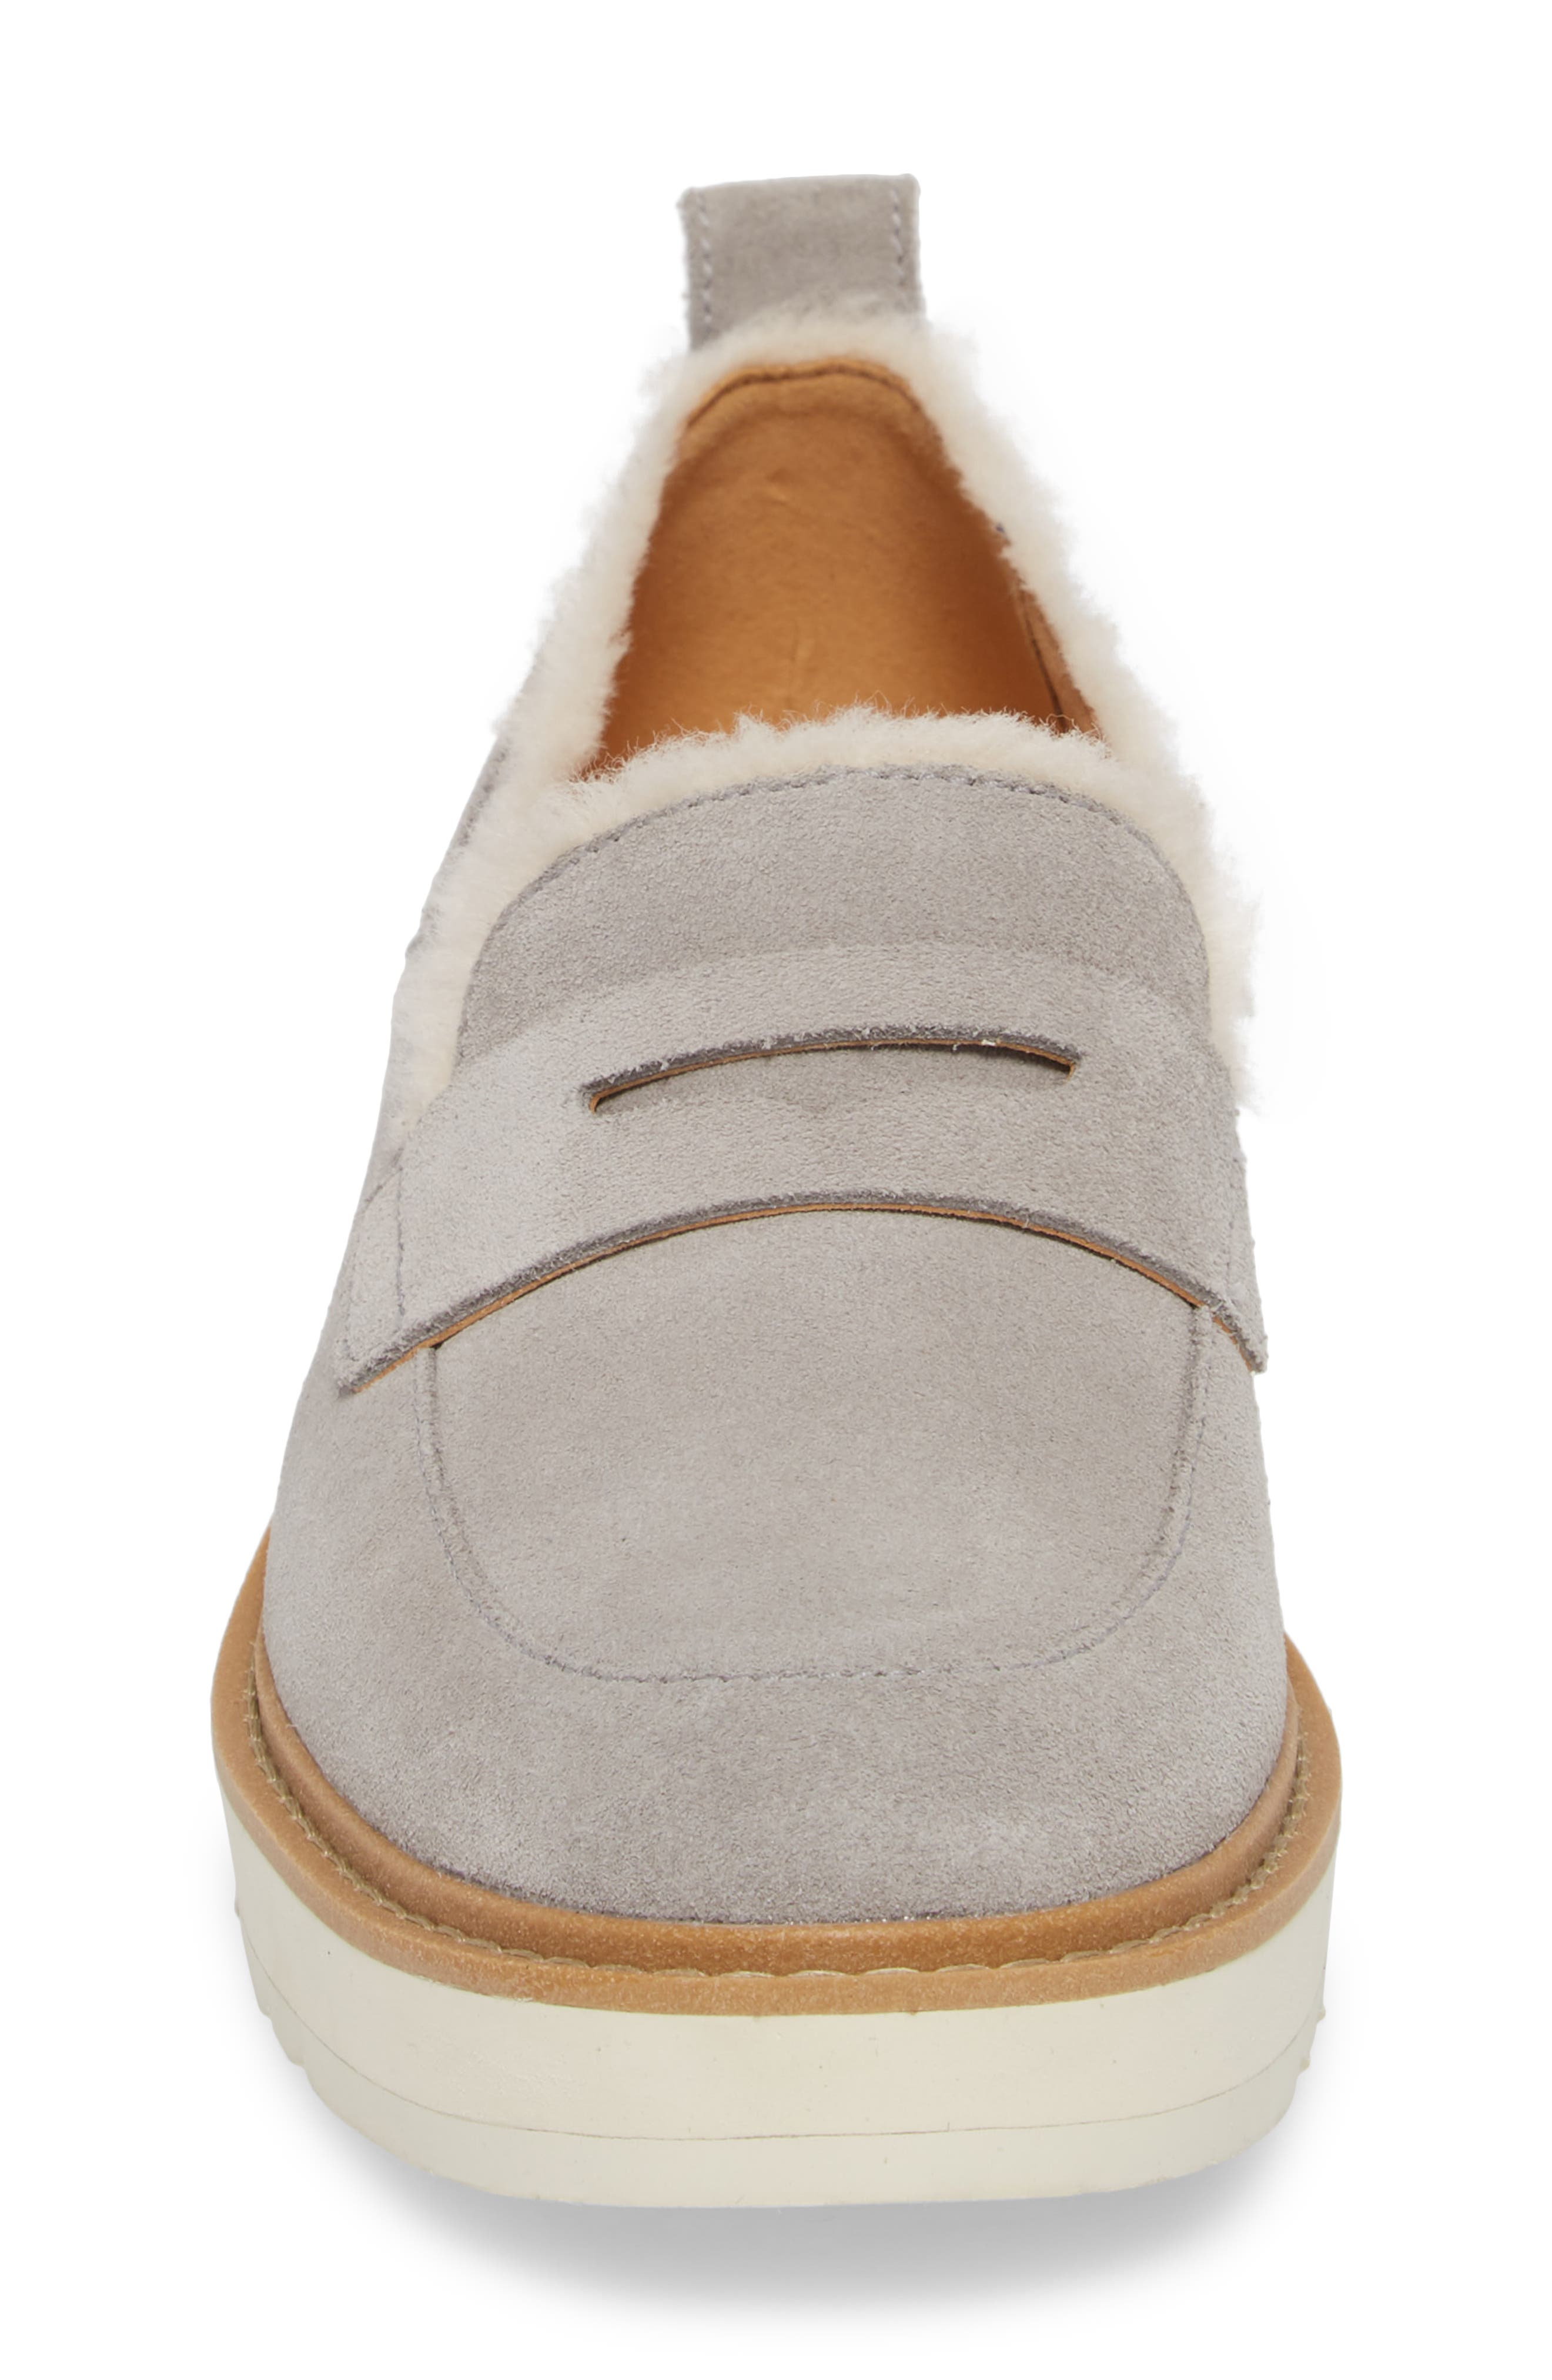 Atwater Spill Seam Wedge Loafer,                             Alternate thumbnail 4, color,                             SEAL LEATHER